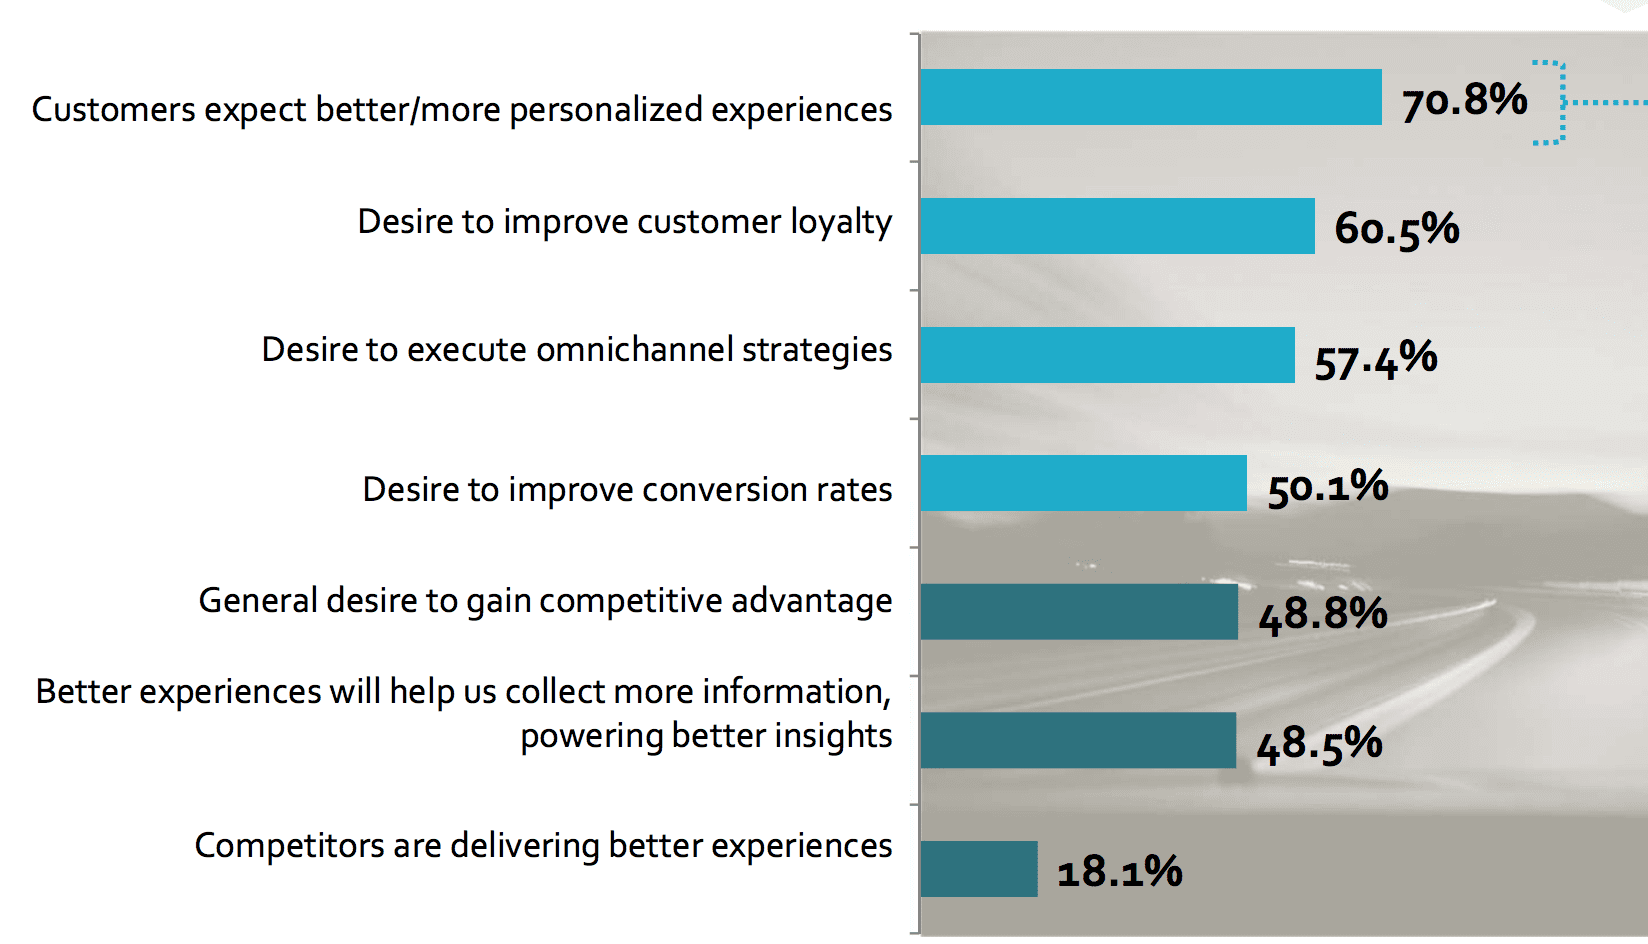 Why Are Businesses Aiming To Improve Customer Experience Smart Delivering The Youll Notice Least Concern Was Competitors A Better There Is Less Focus On And More Providing Unique